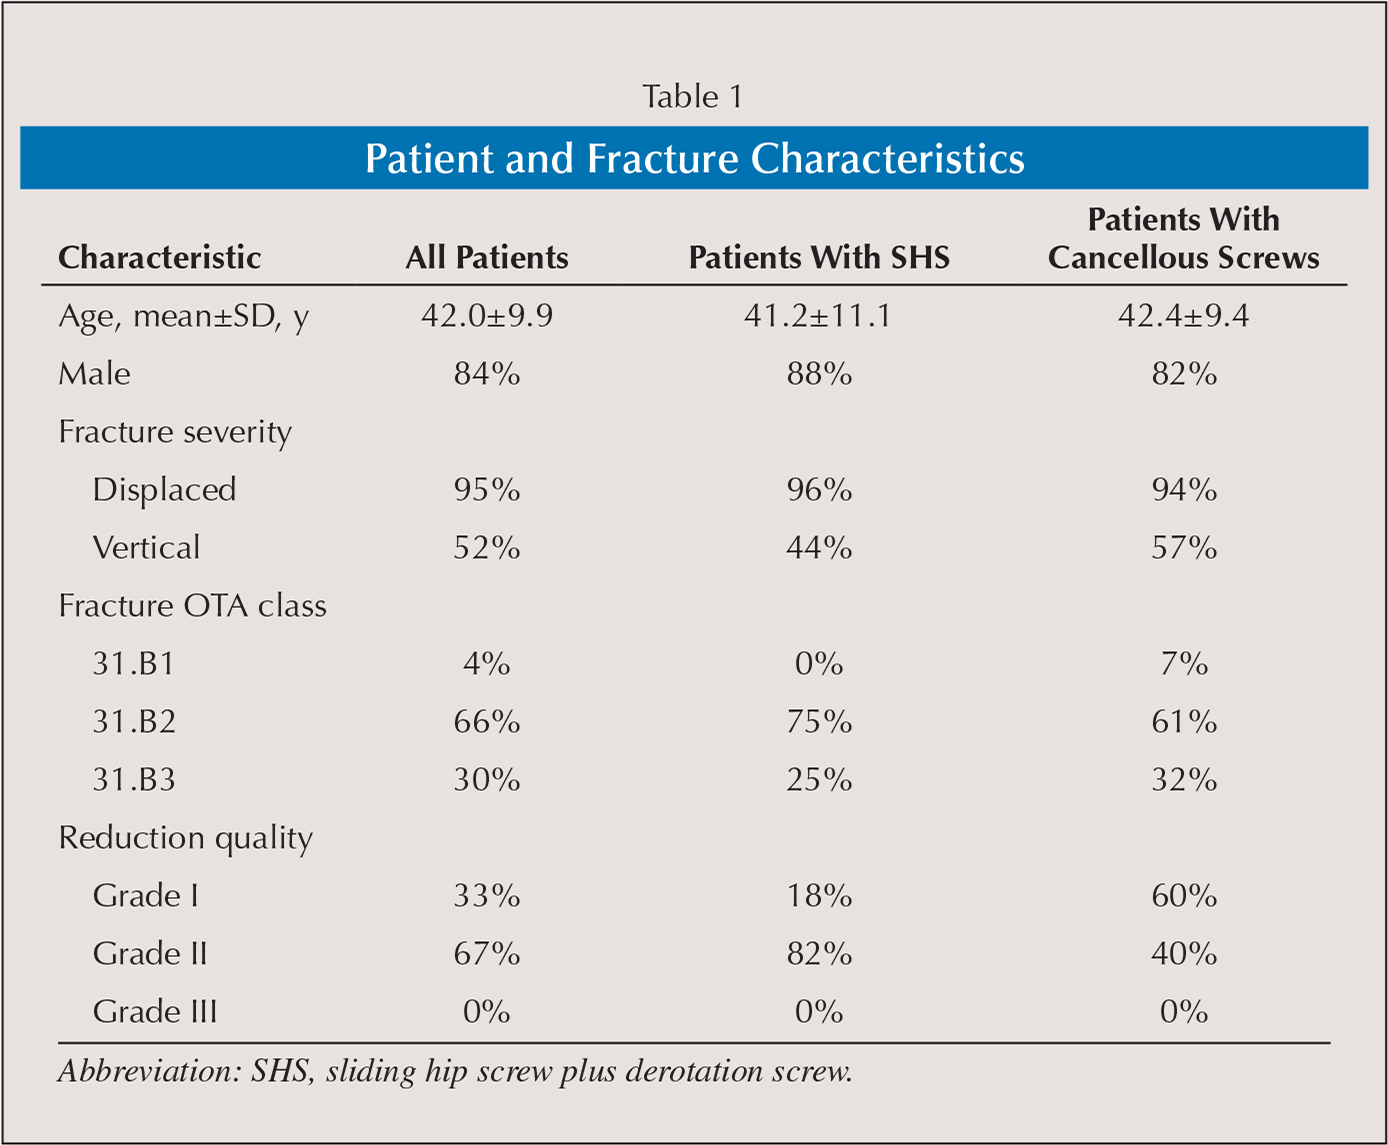 Patient and Fracture Characteristics